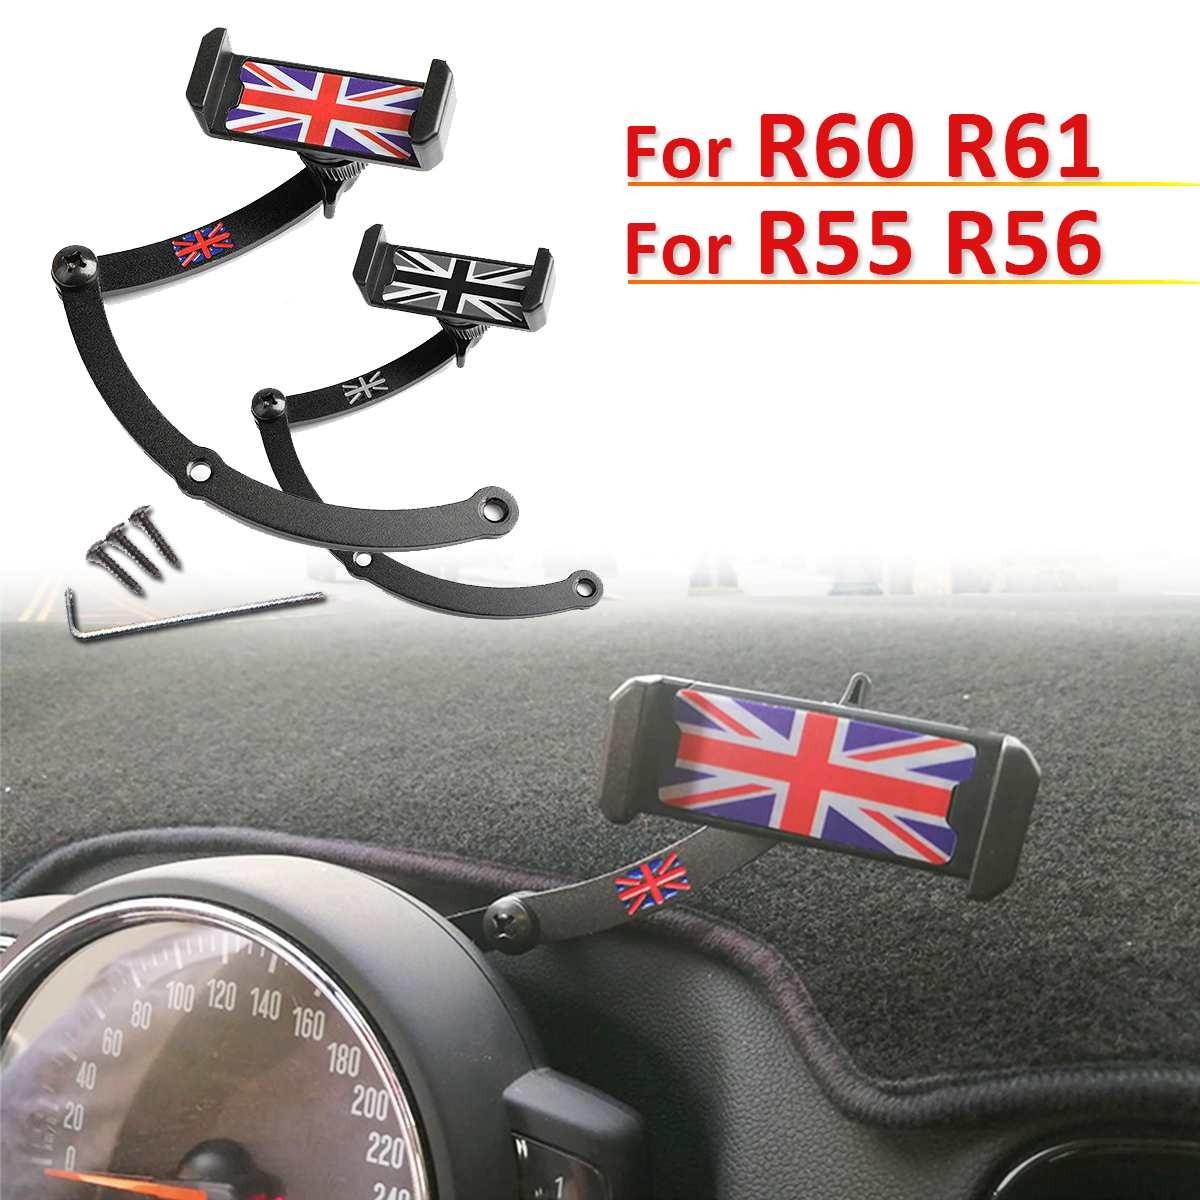 Steering Wheel Car Cell Phone Mount Folding Holder For BMW For Mini Cooper R55 R56 R60 R61 Car Auto Accessories Union Jack Stand steering wheel phone holder